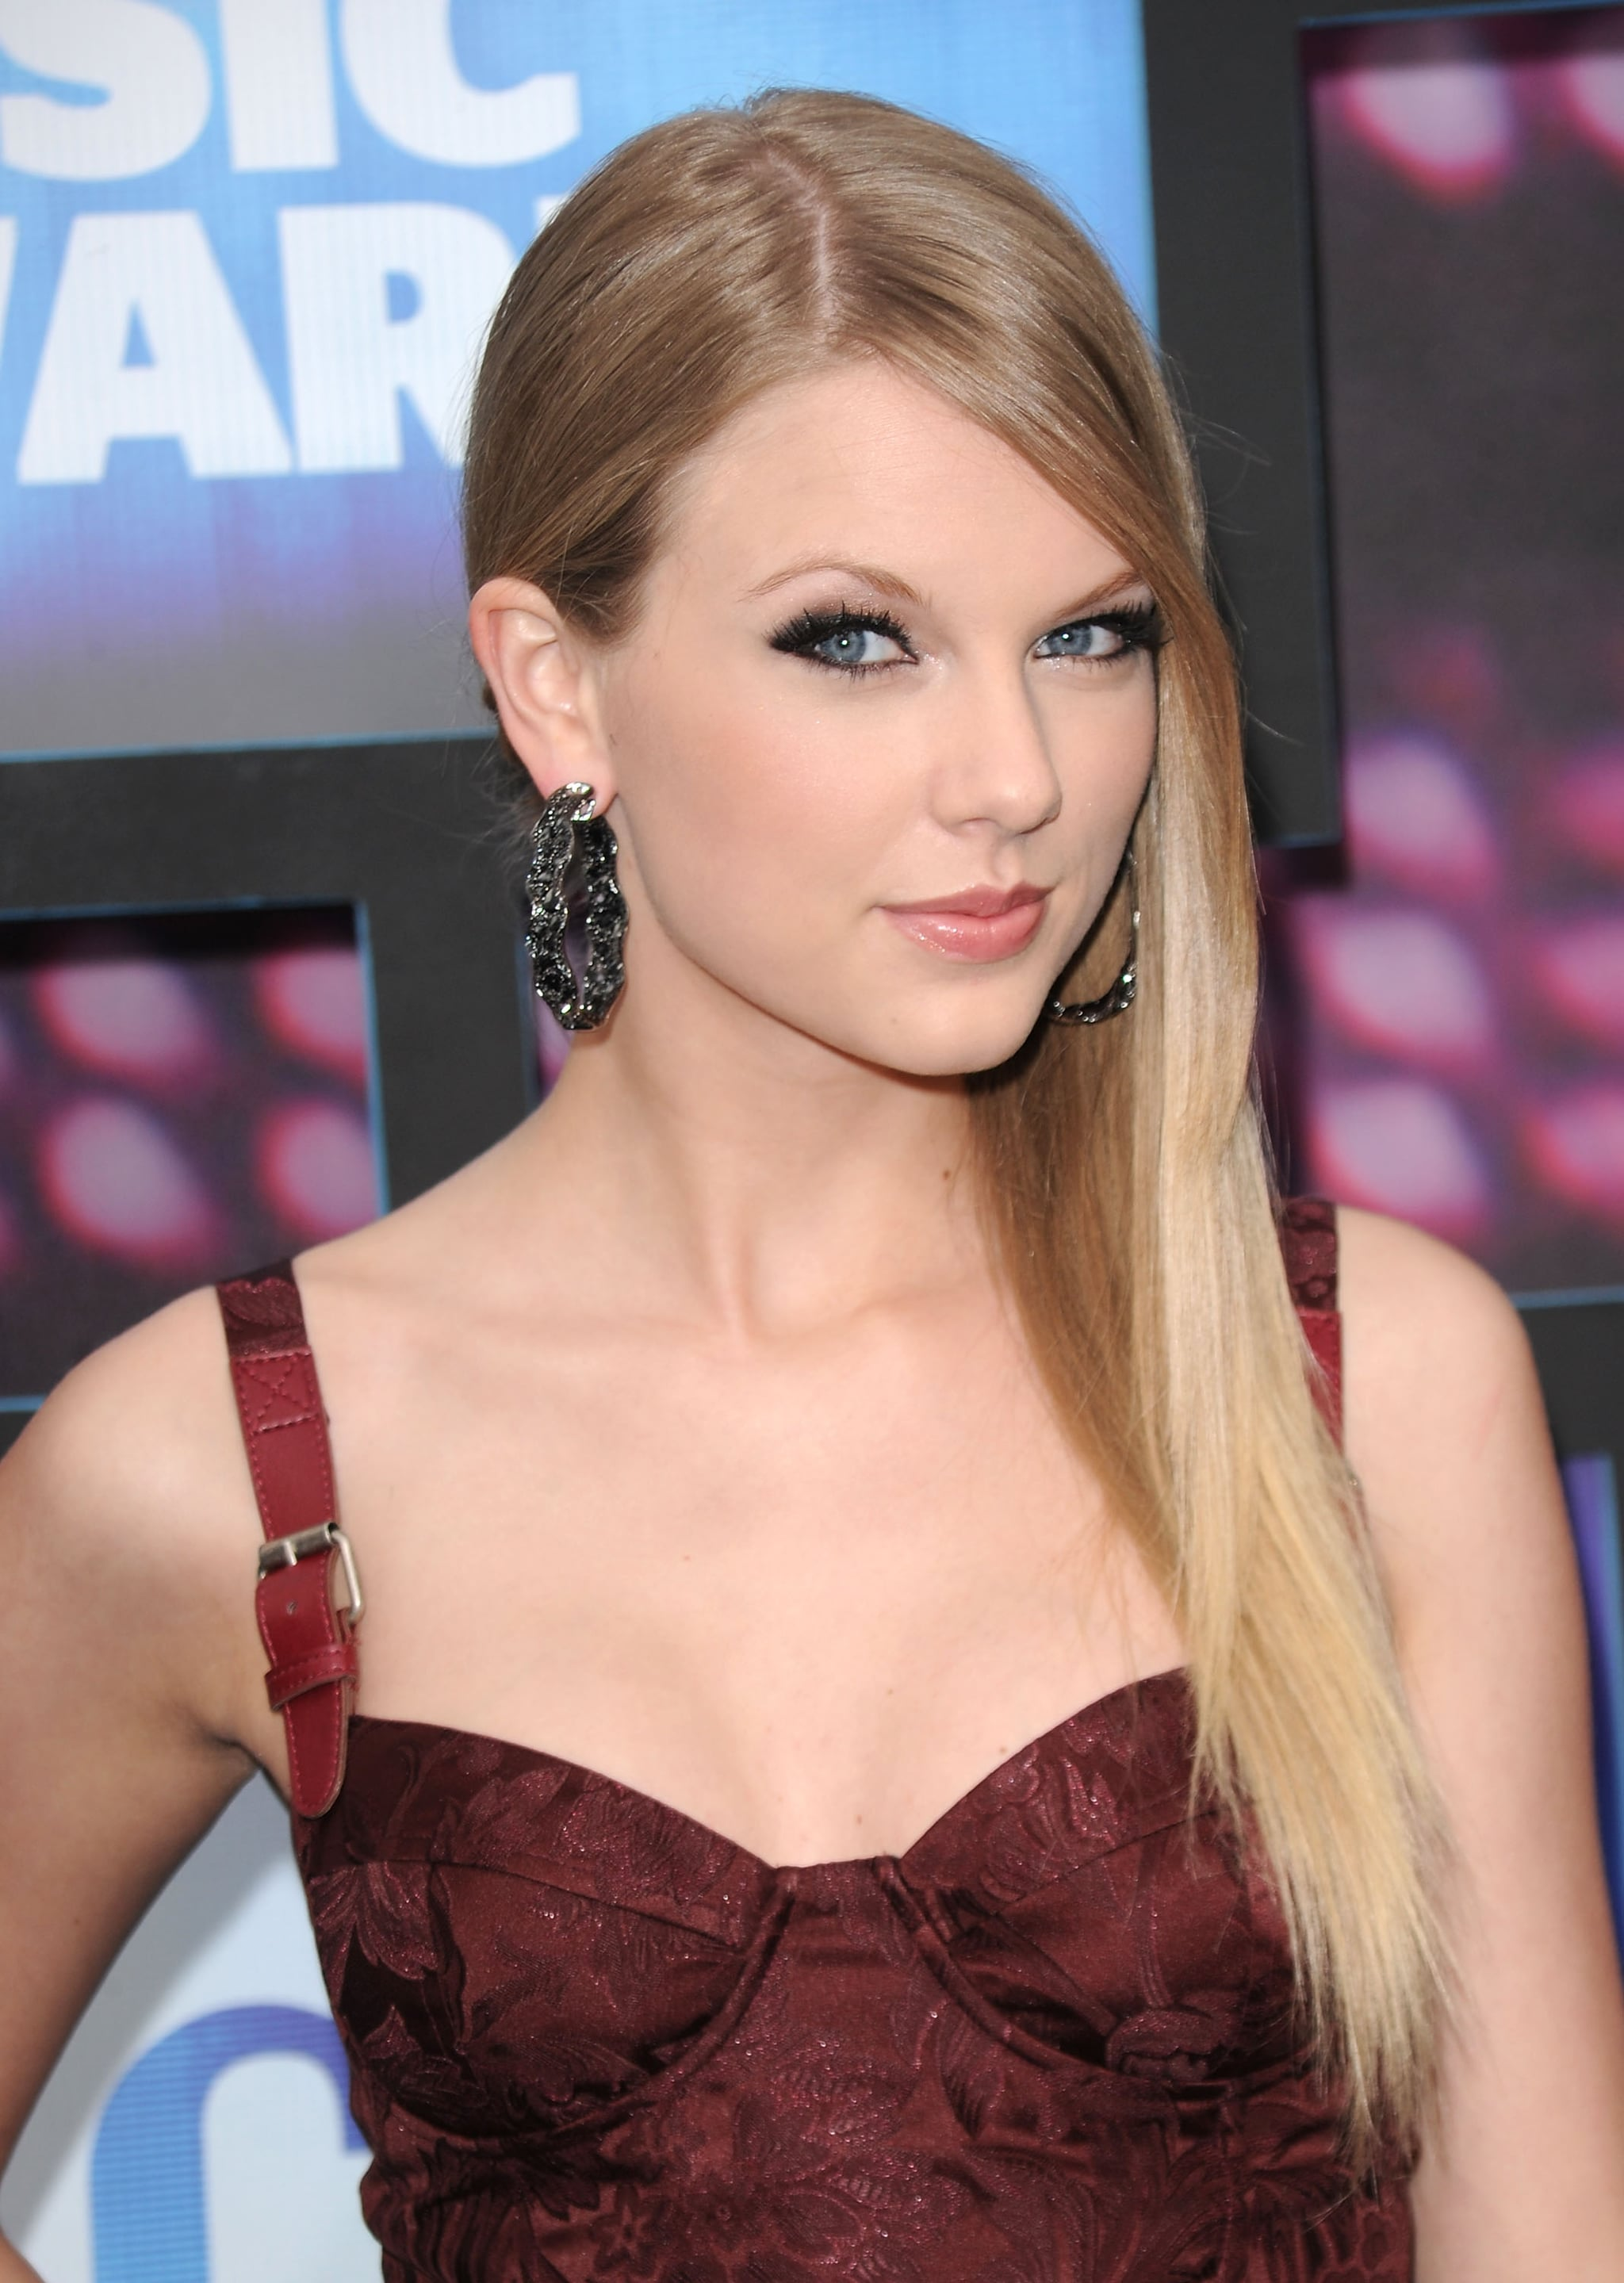 Pictures Of Taylor Swift Carrie Underwood Nicole Kidman